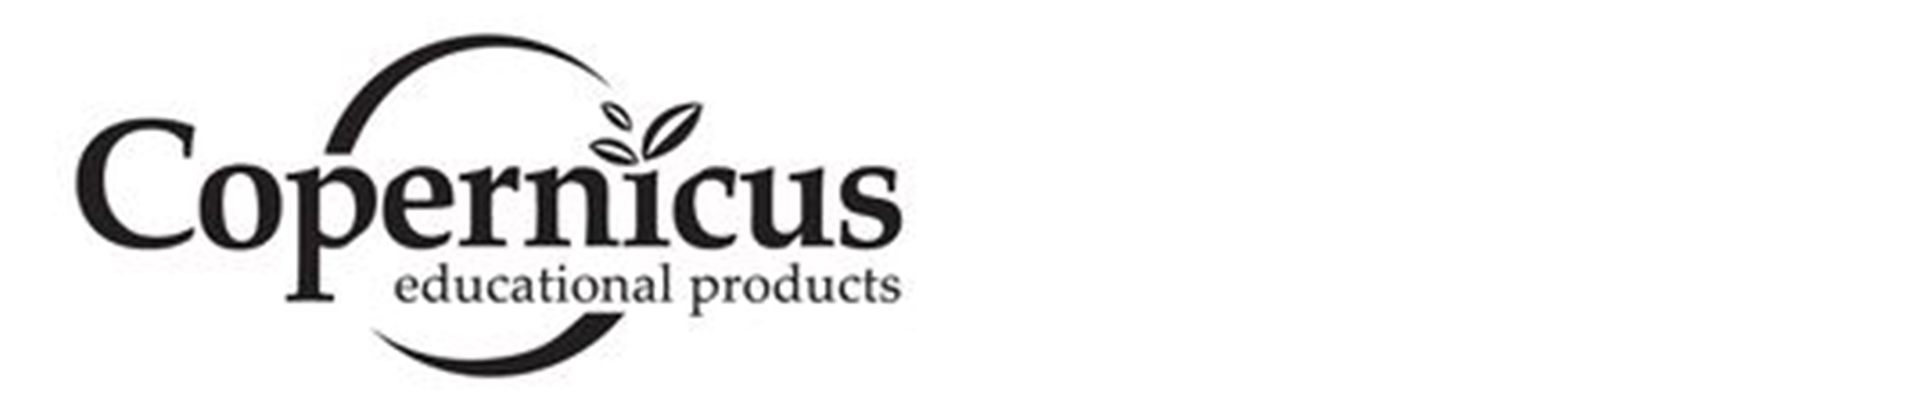 Copernicus Educational Products Inc.